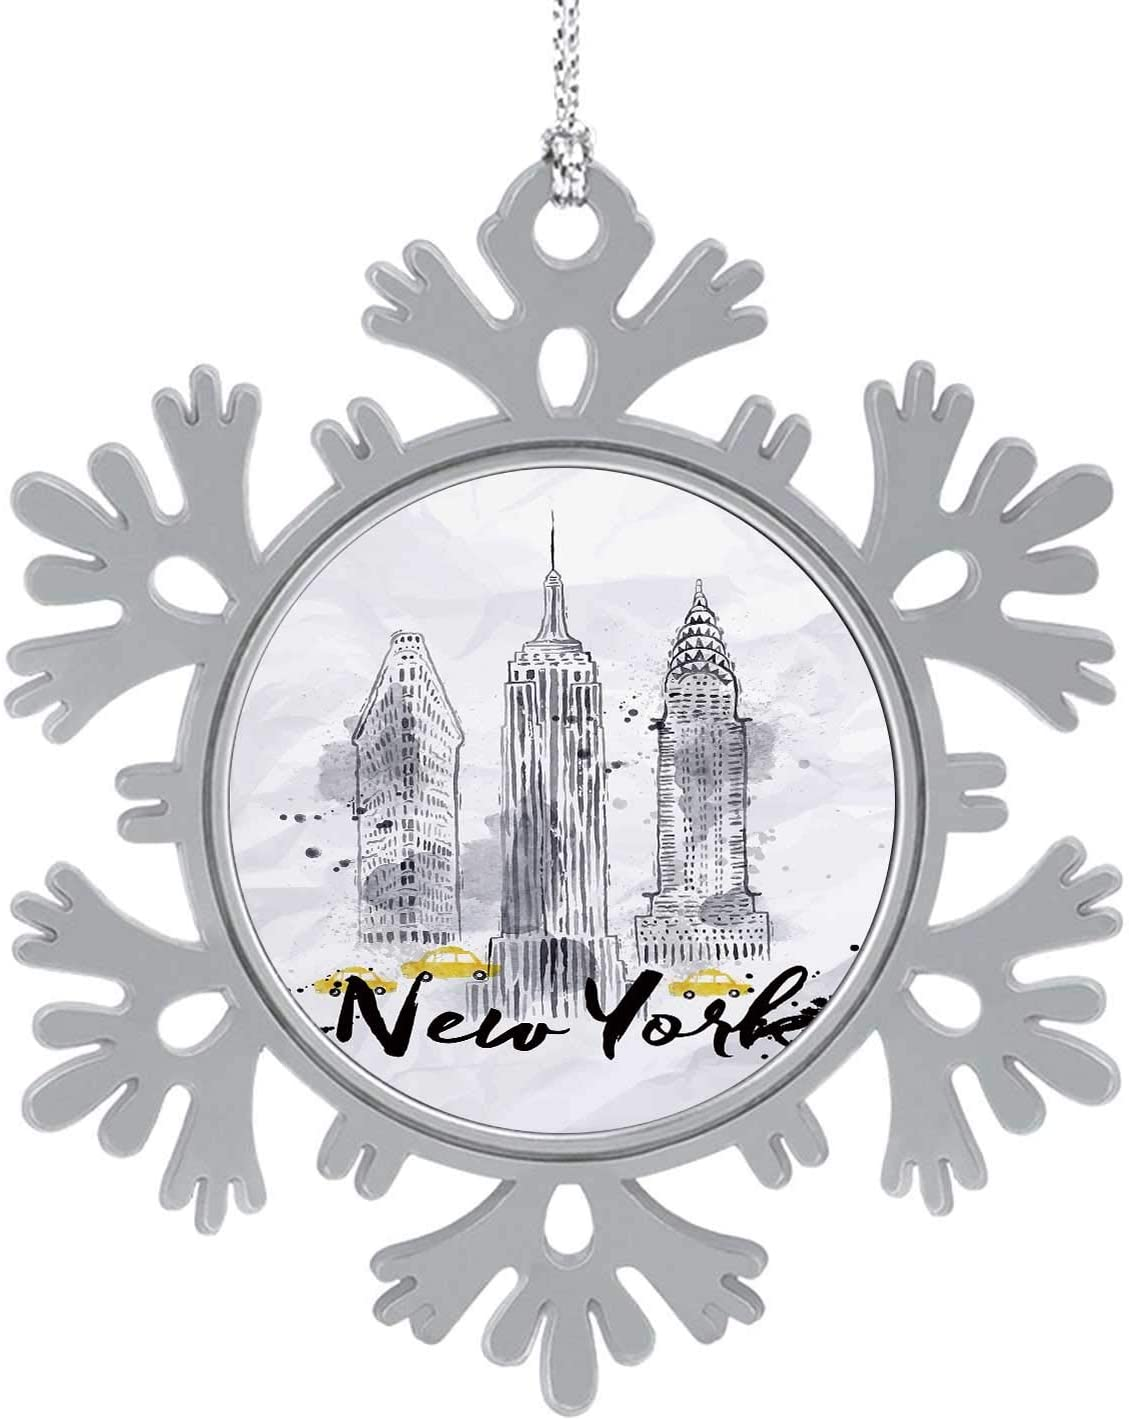 New ork skscrapers Empire State Building in STLE Drawing with Drops and Splashes on Crumpled Paper,Silver Snowflakes & Snowflakes Hanging New Year Party Home Decoration 1PCS